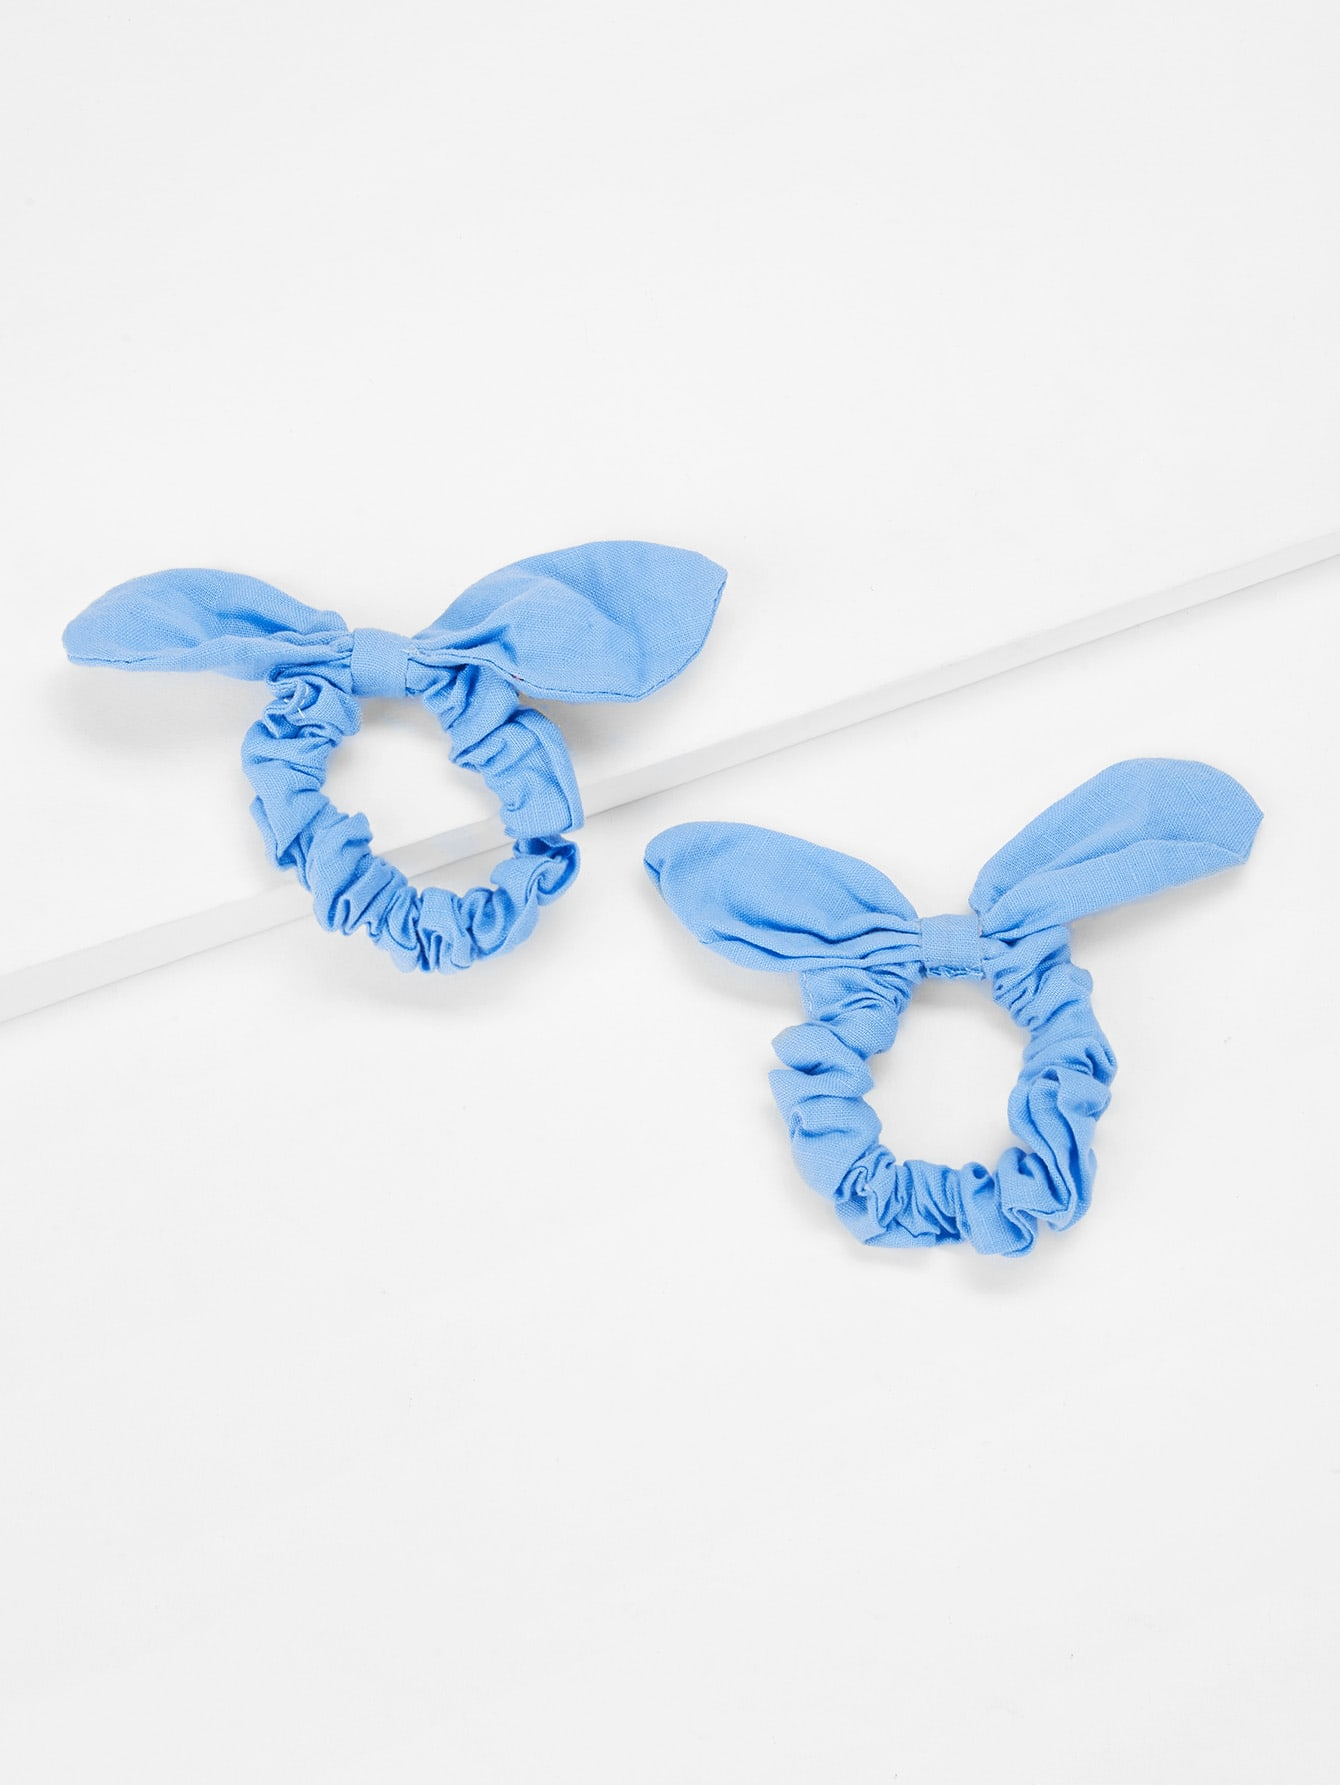 Knot Design Hair Tie 2Pcs ear knot velvet hair tie 2pcs